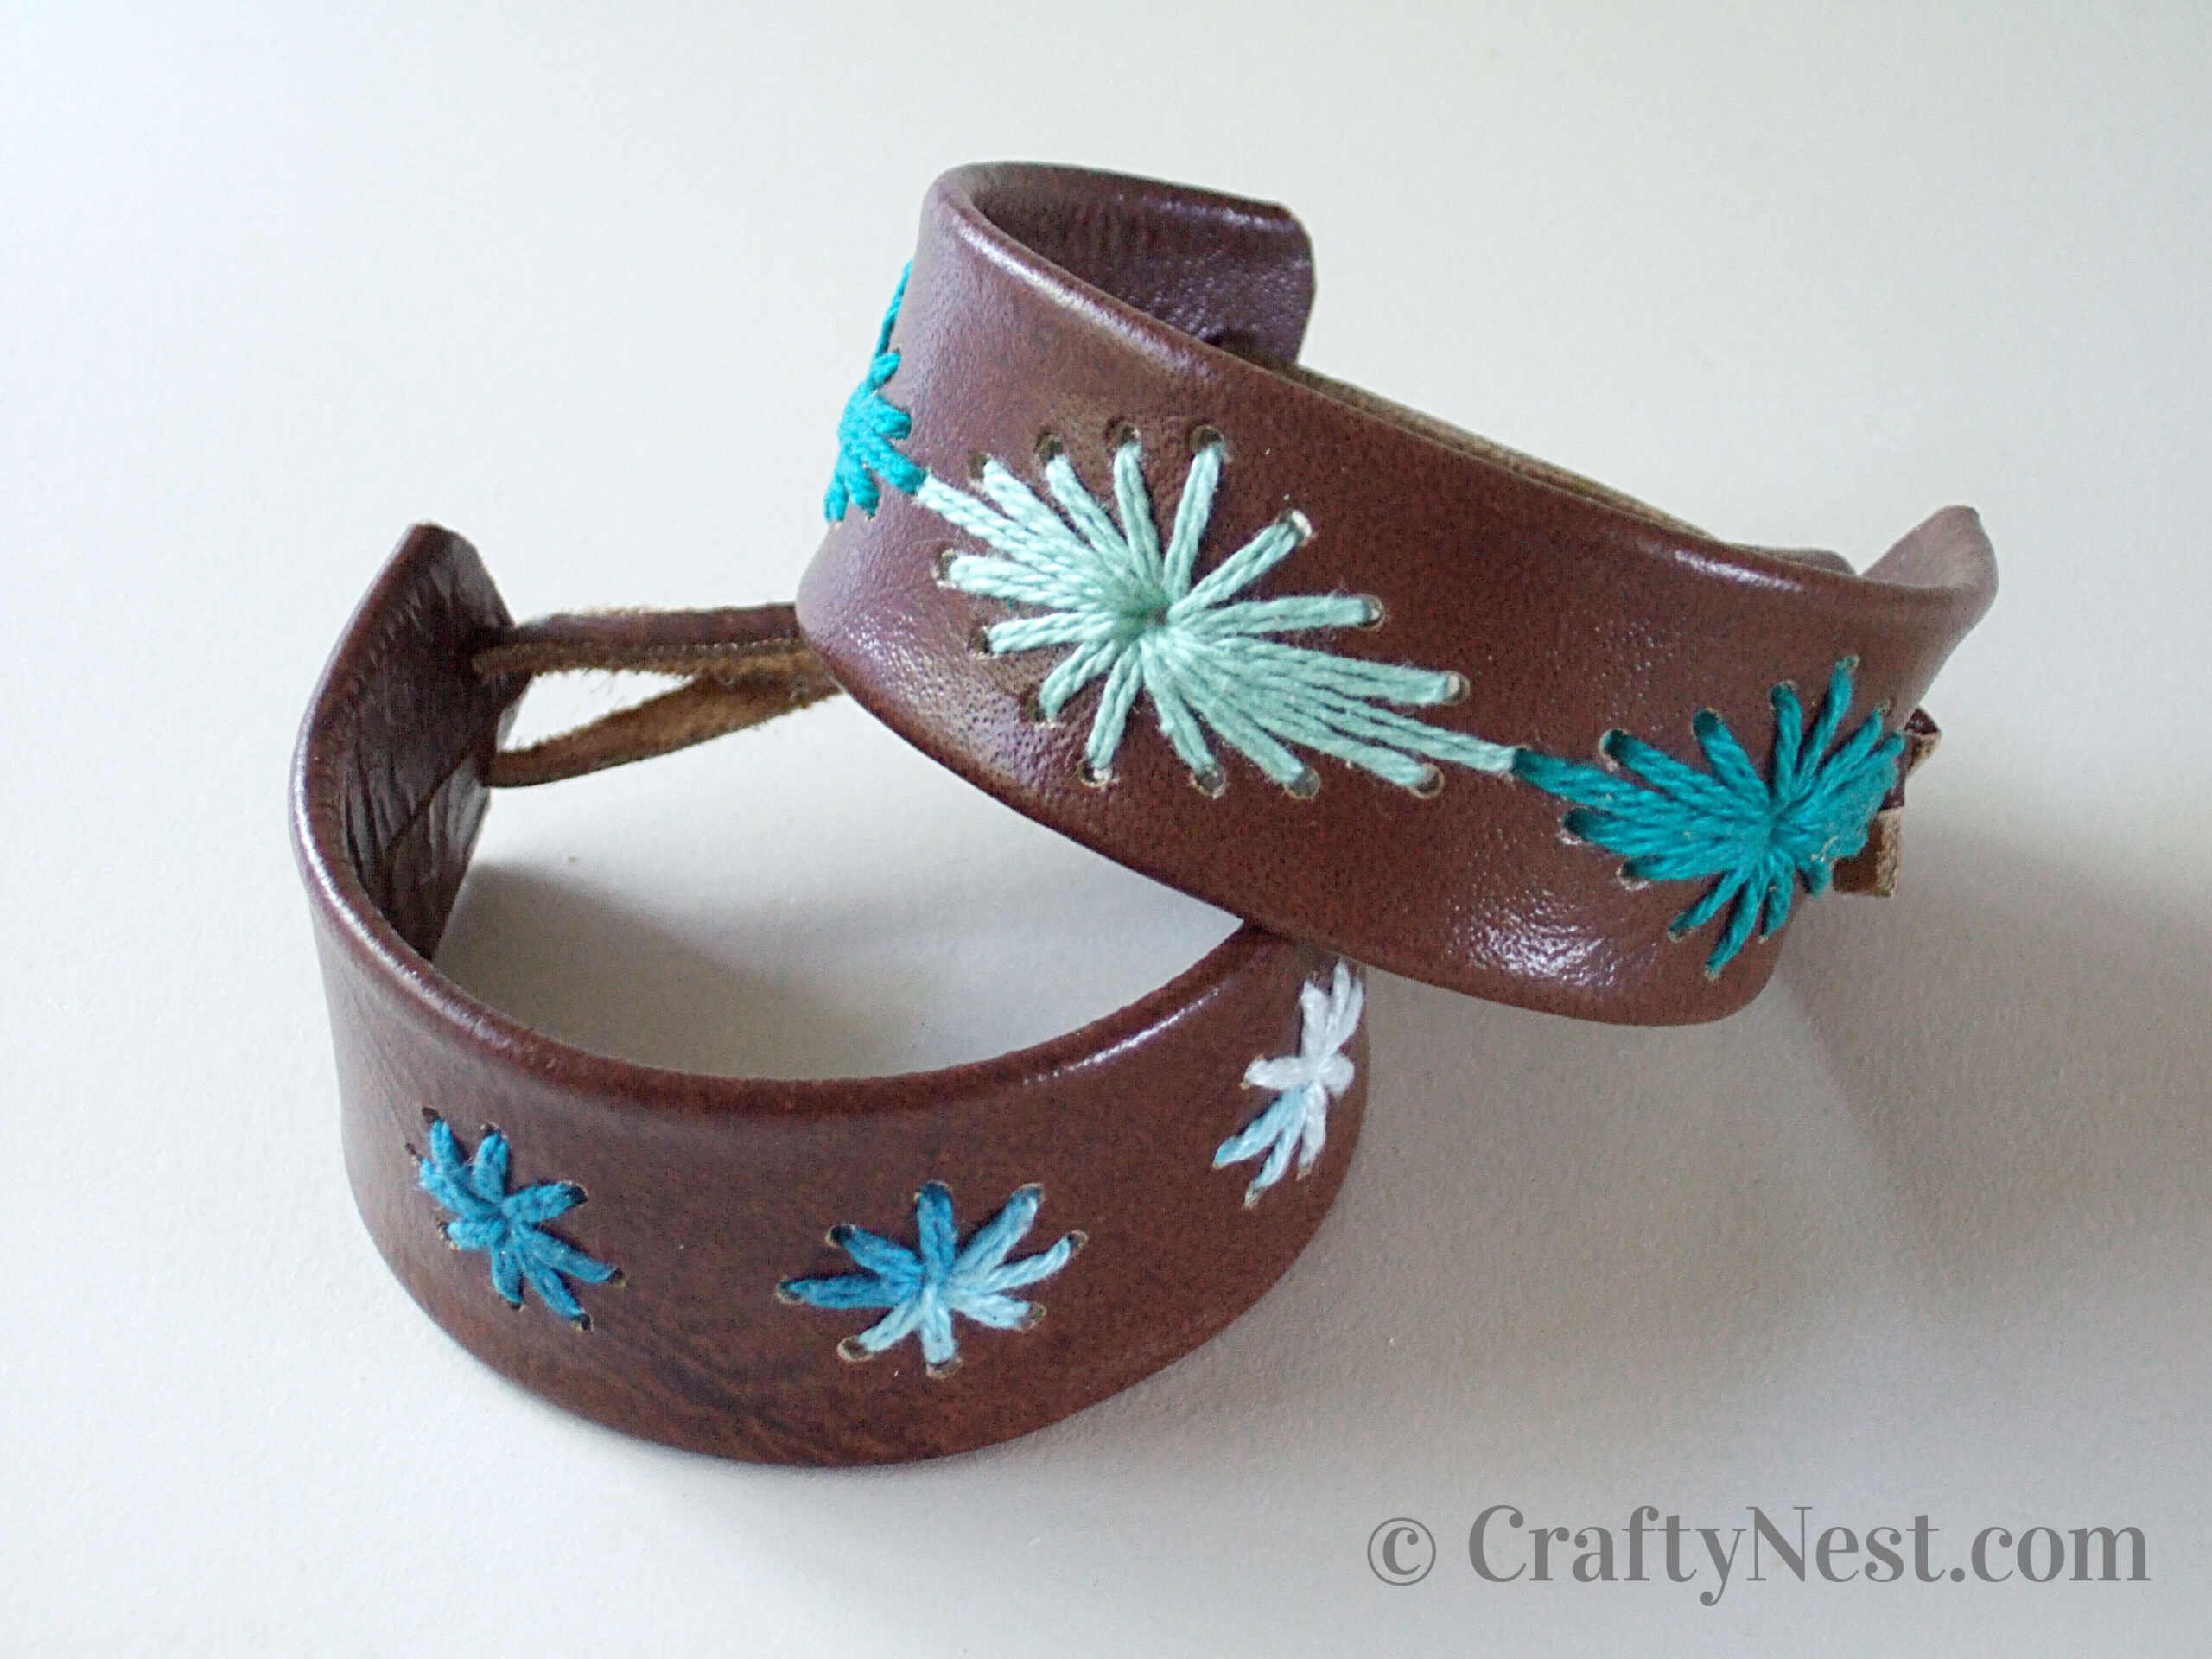 Stitched leather bracelets, photo